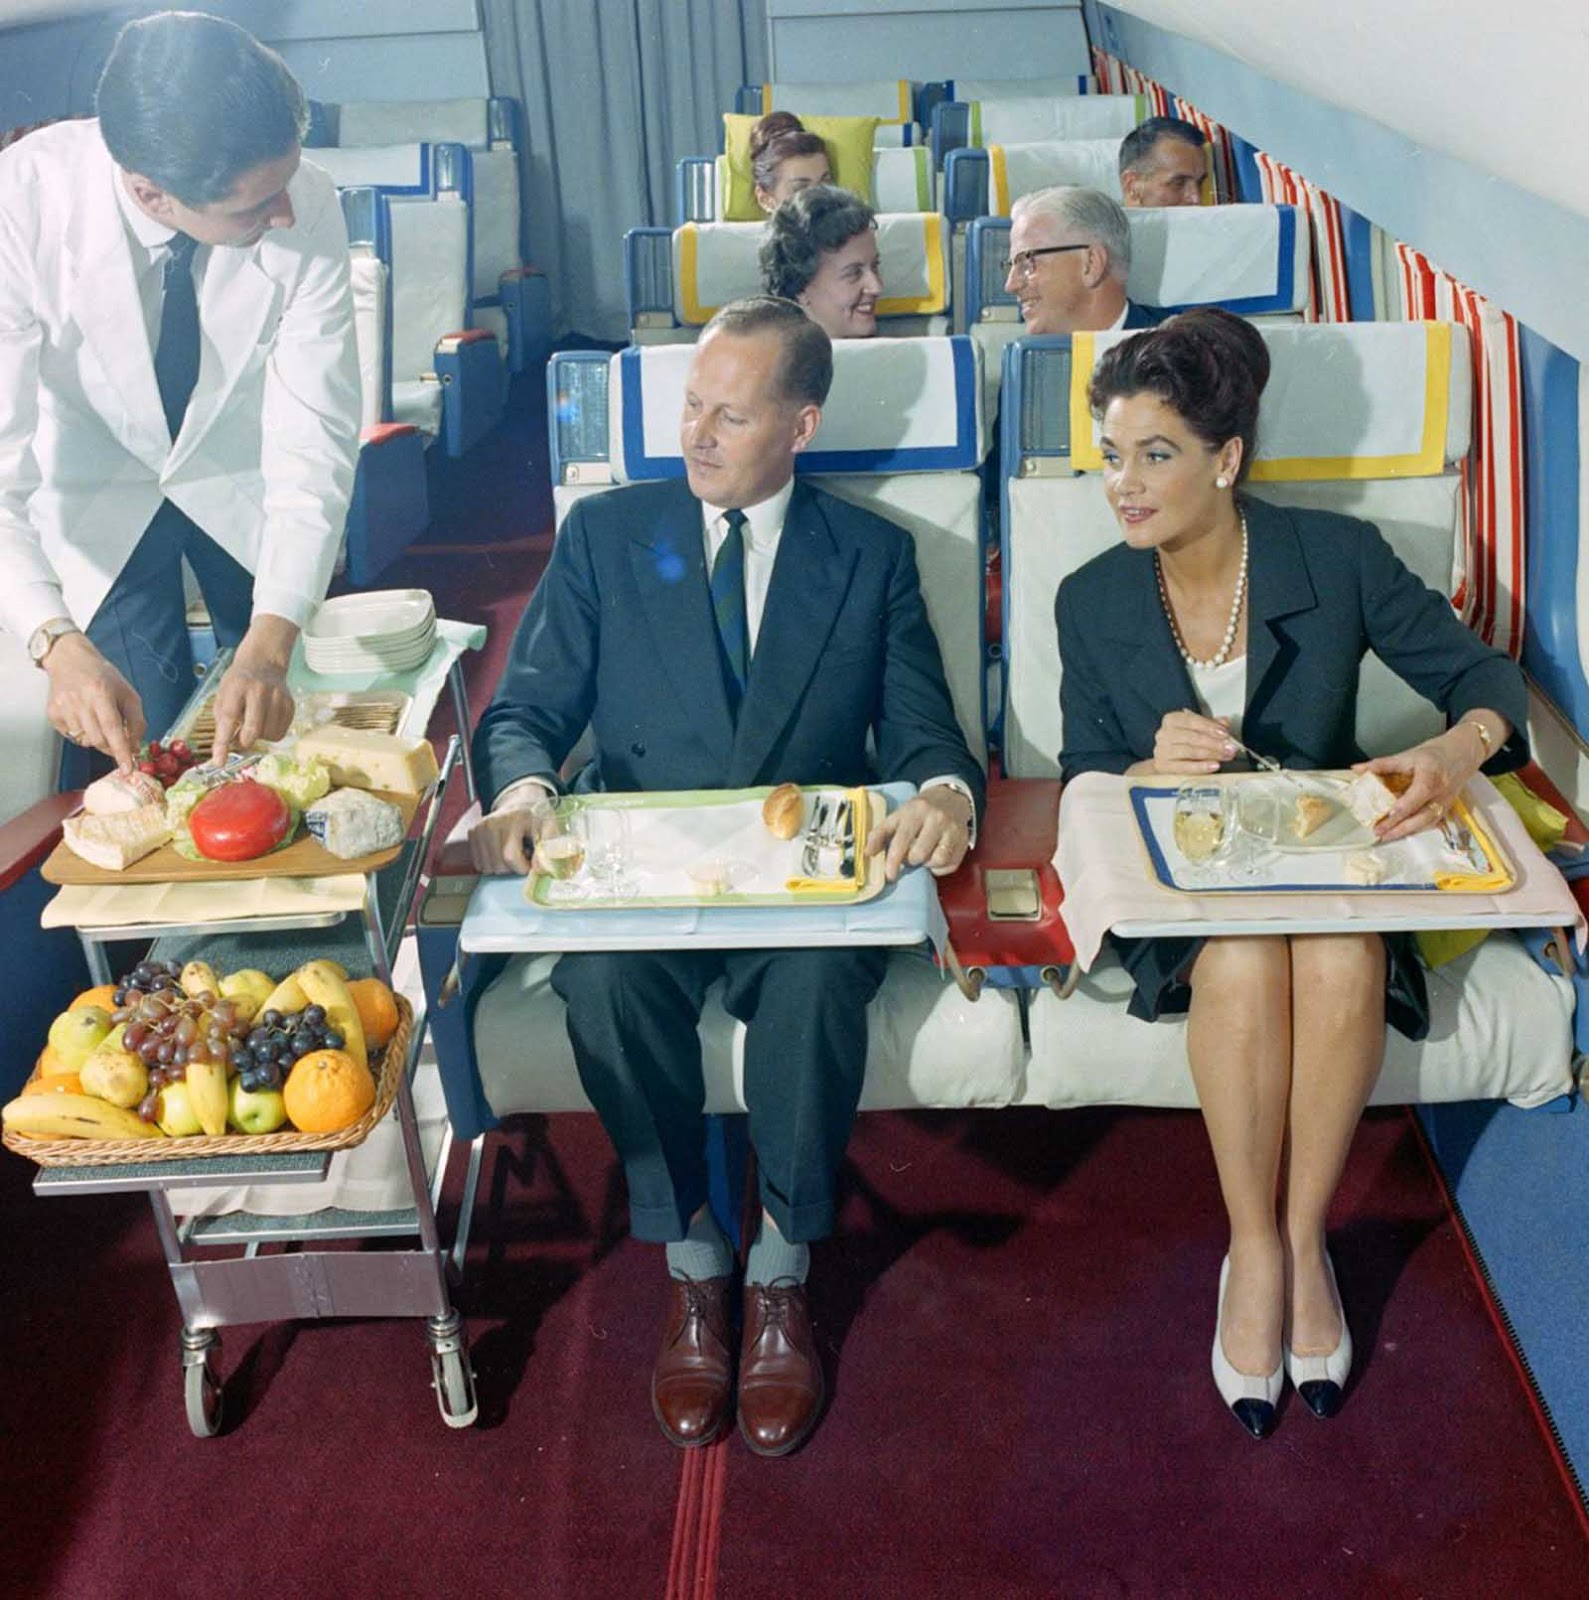 First class of Swissair in 1960s.